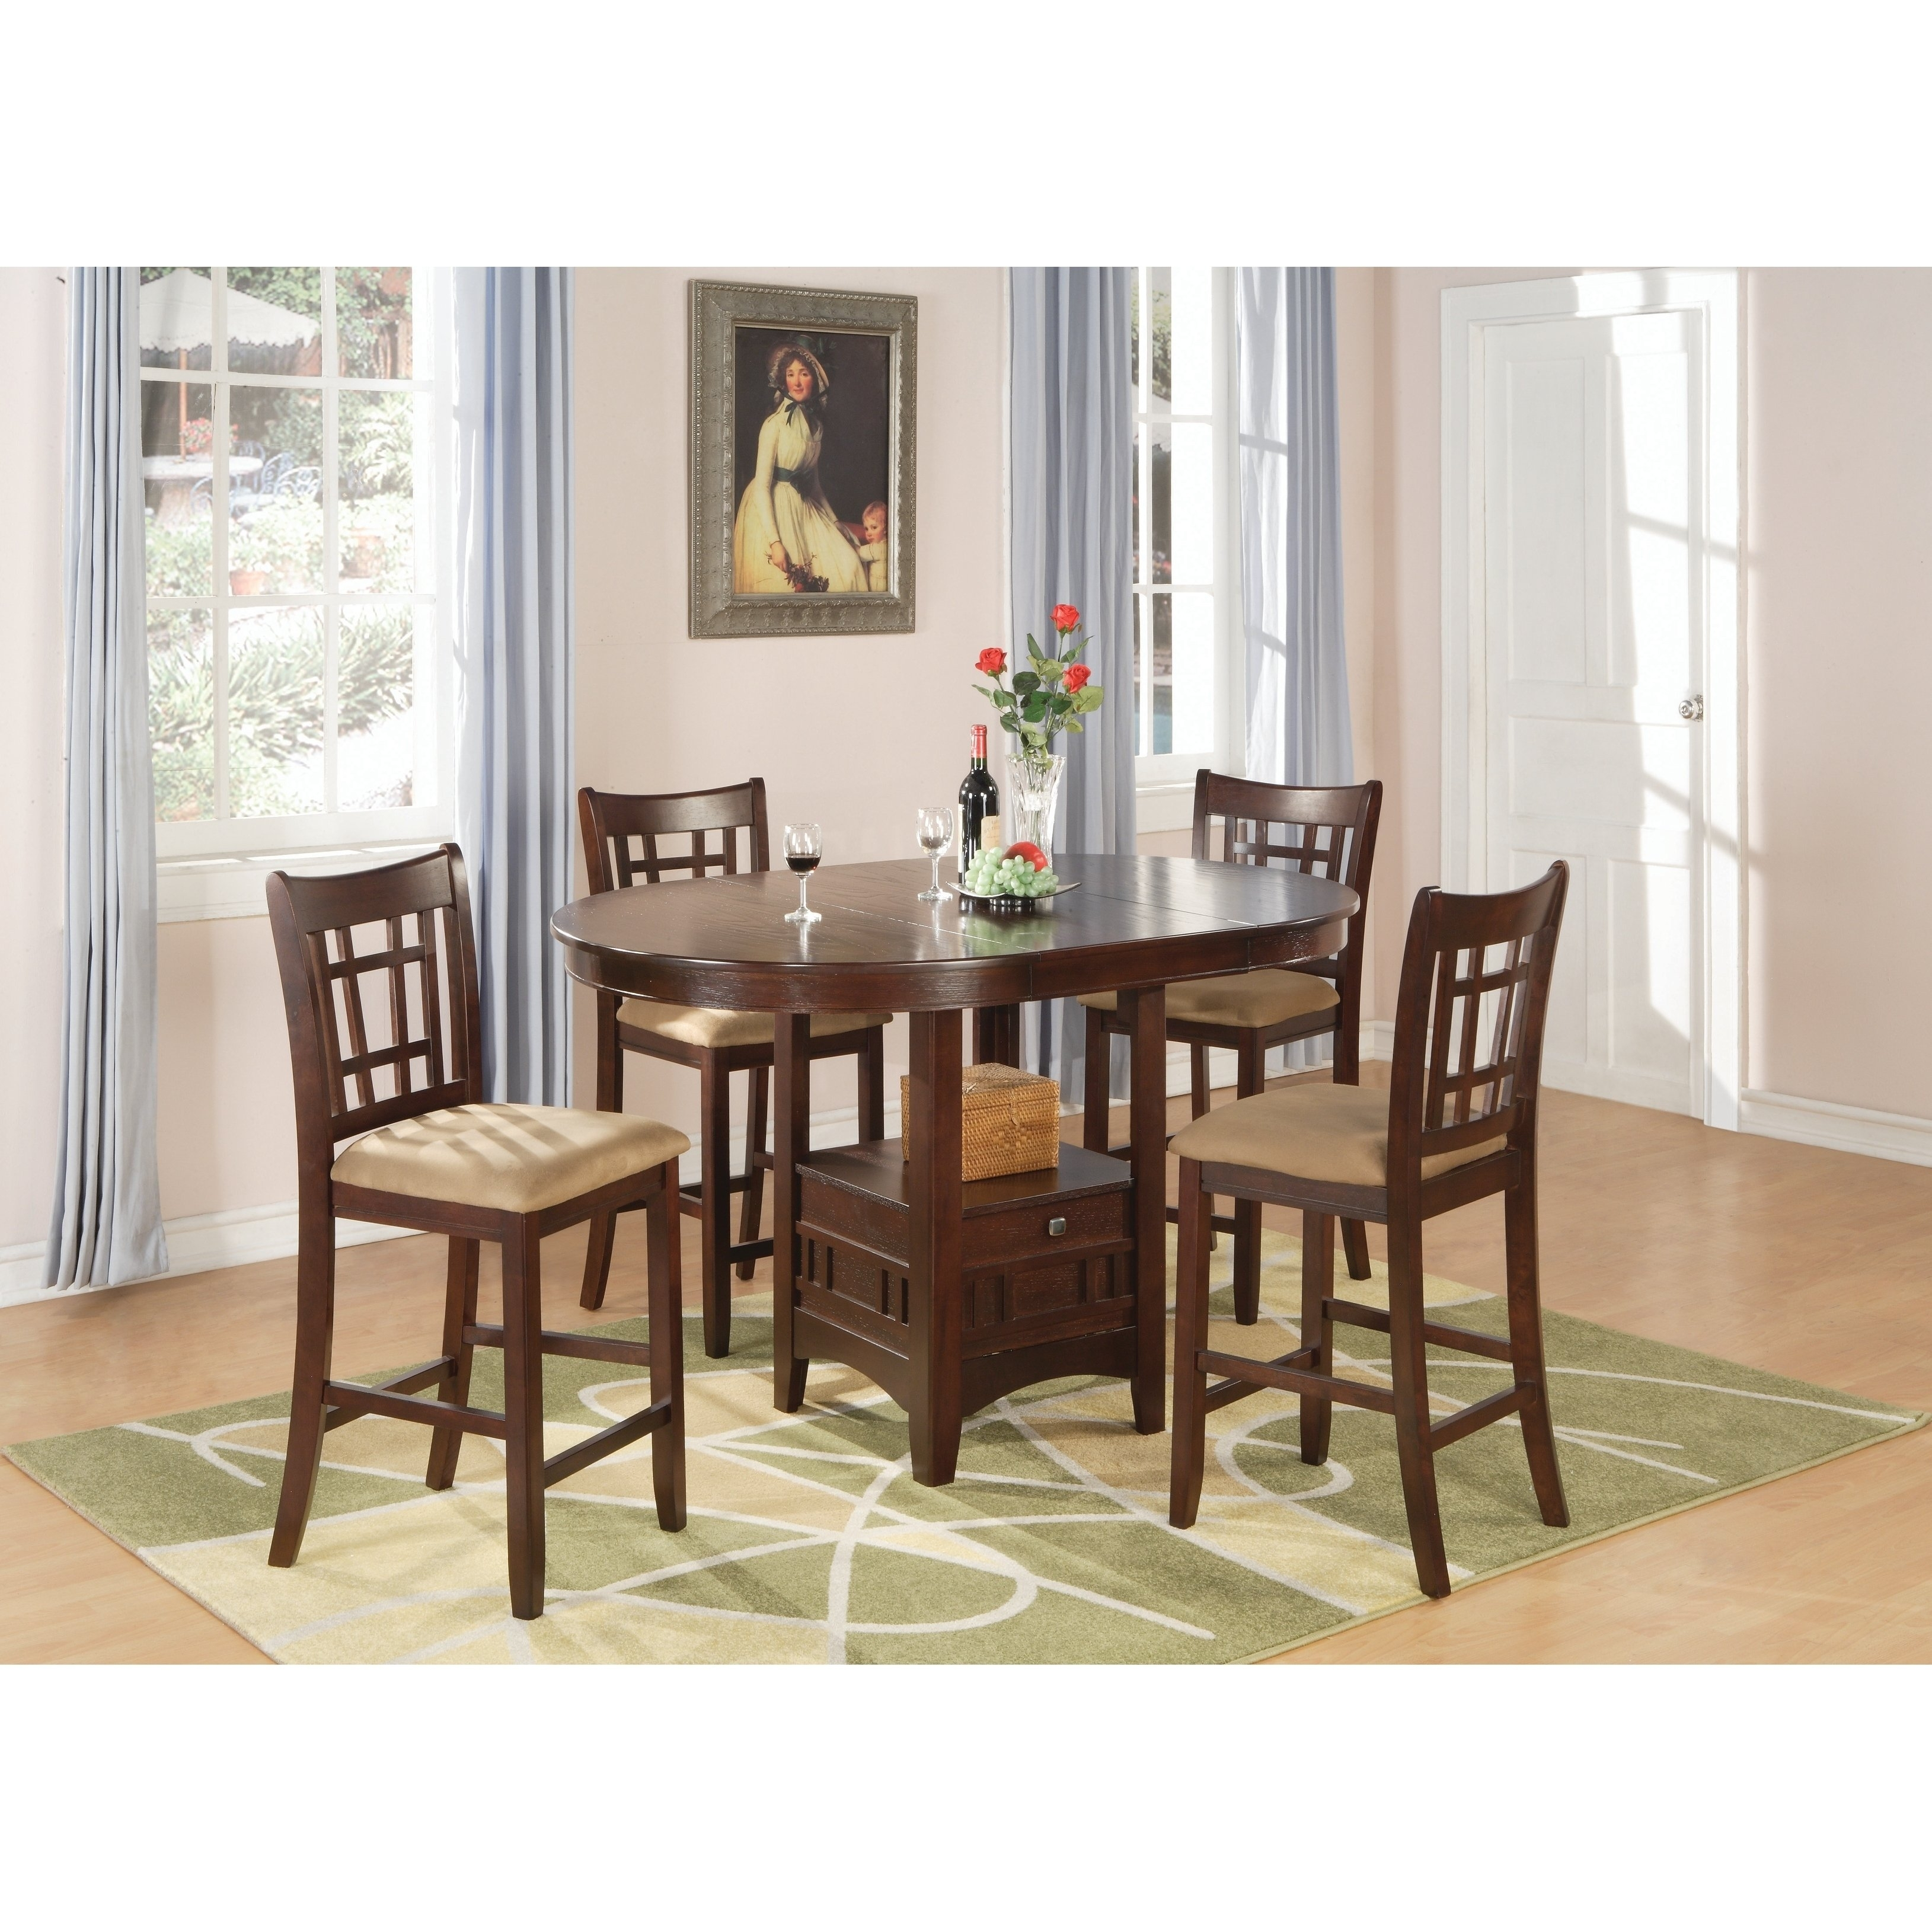 Lavon Transitional Warm Brown 5 Piece Counter Height Dining Set In Best And Newest Jaxon 5 Piece Extension Counter Sets With Fabric Stools (Image 13 of 20)